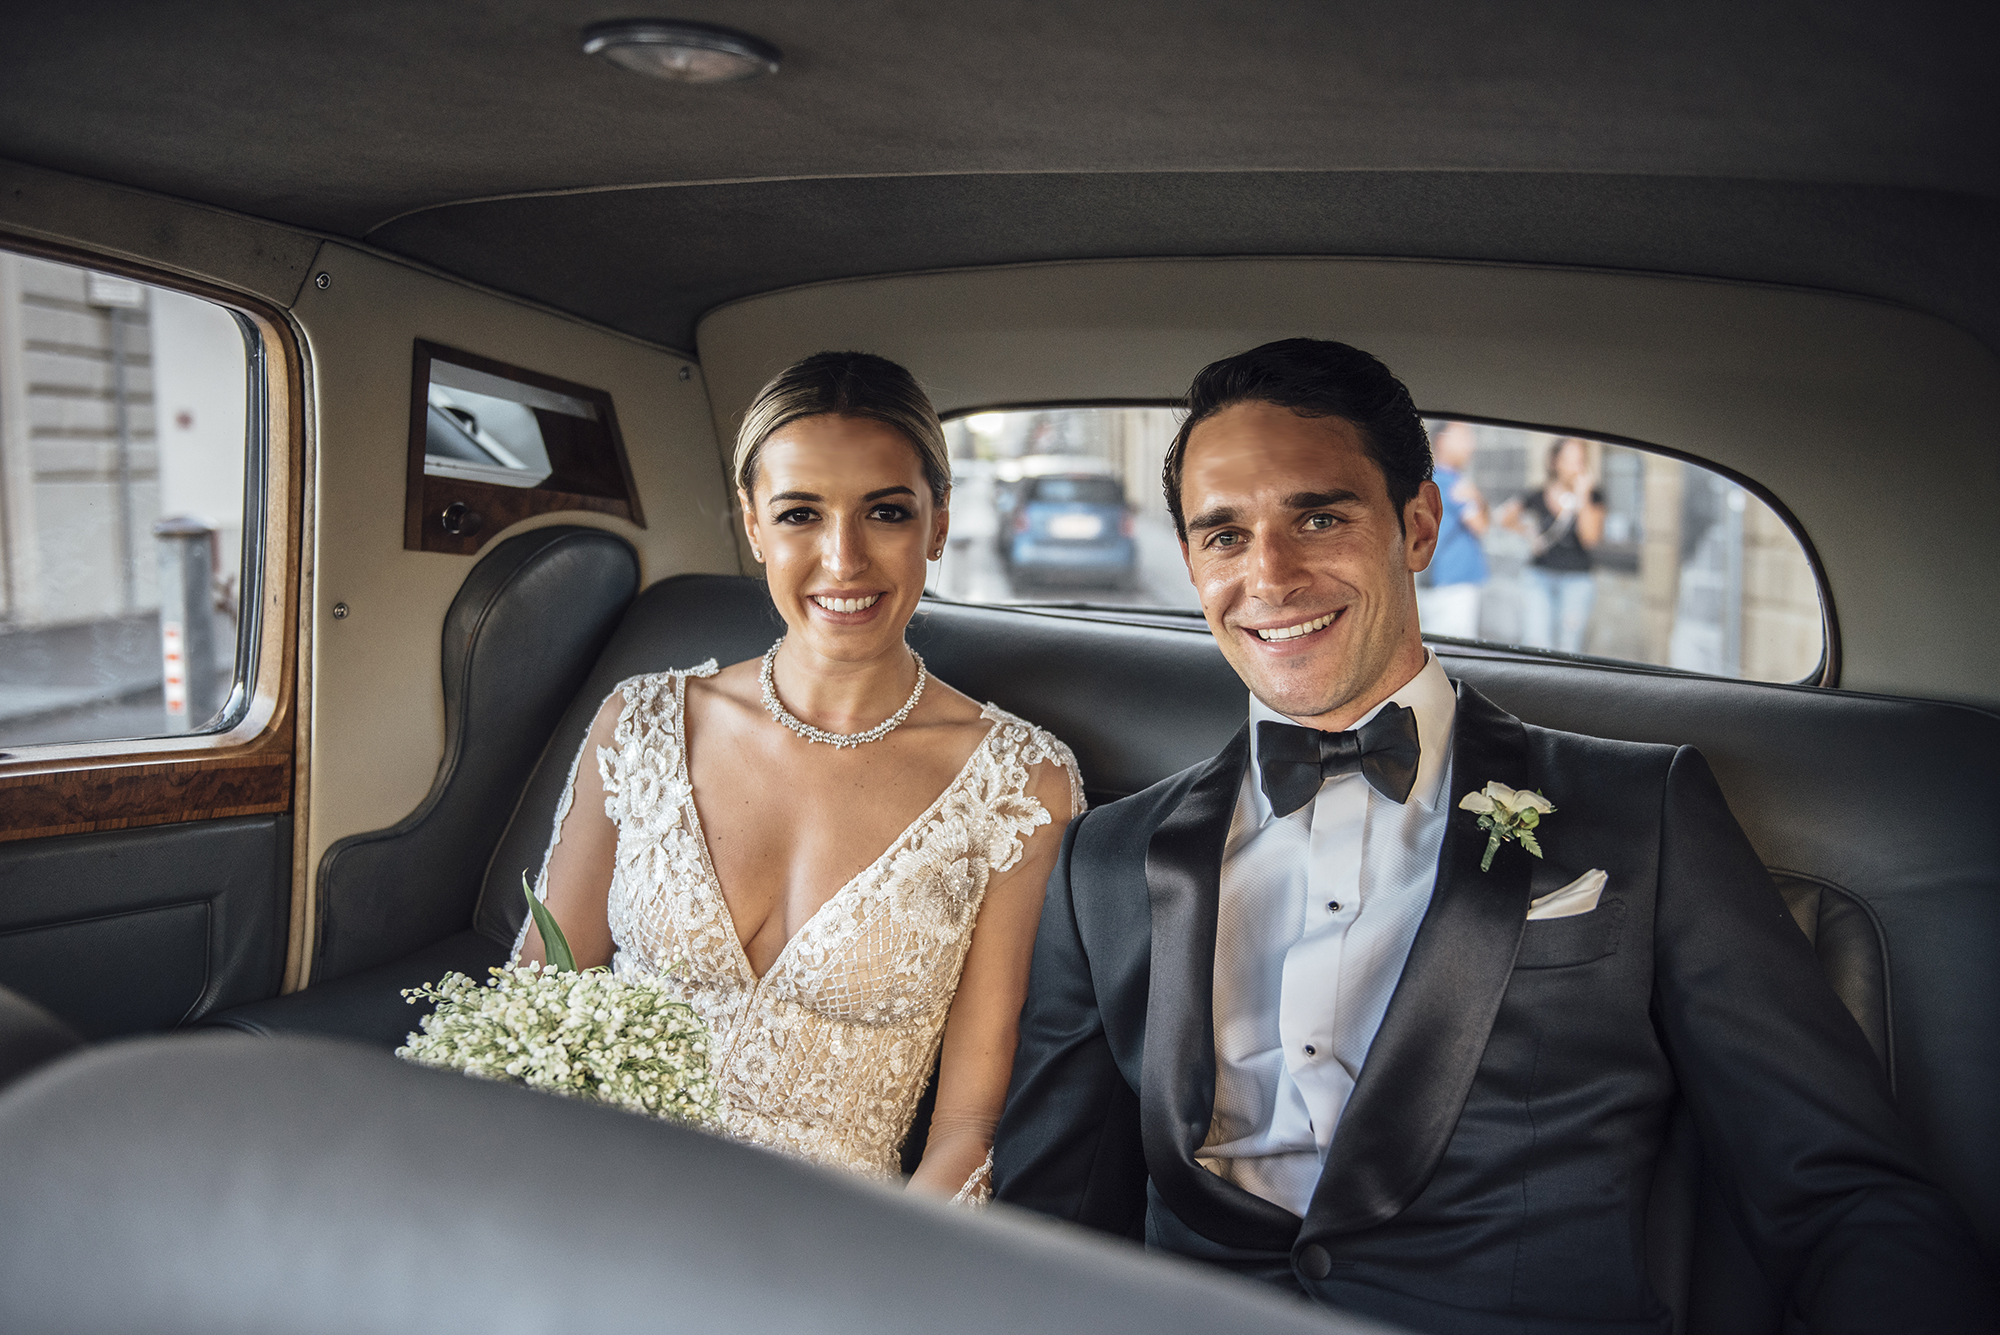 custom-wedding-couple-in-car.jpg